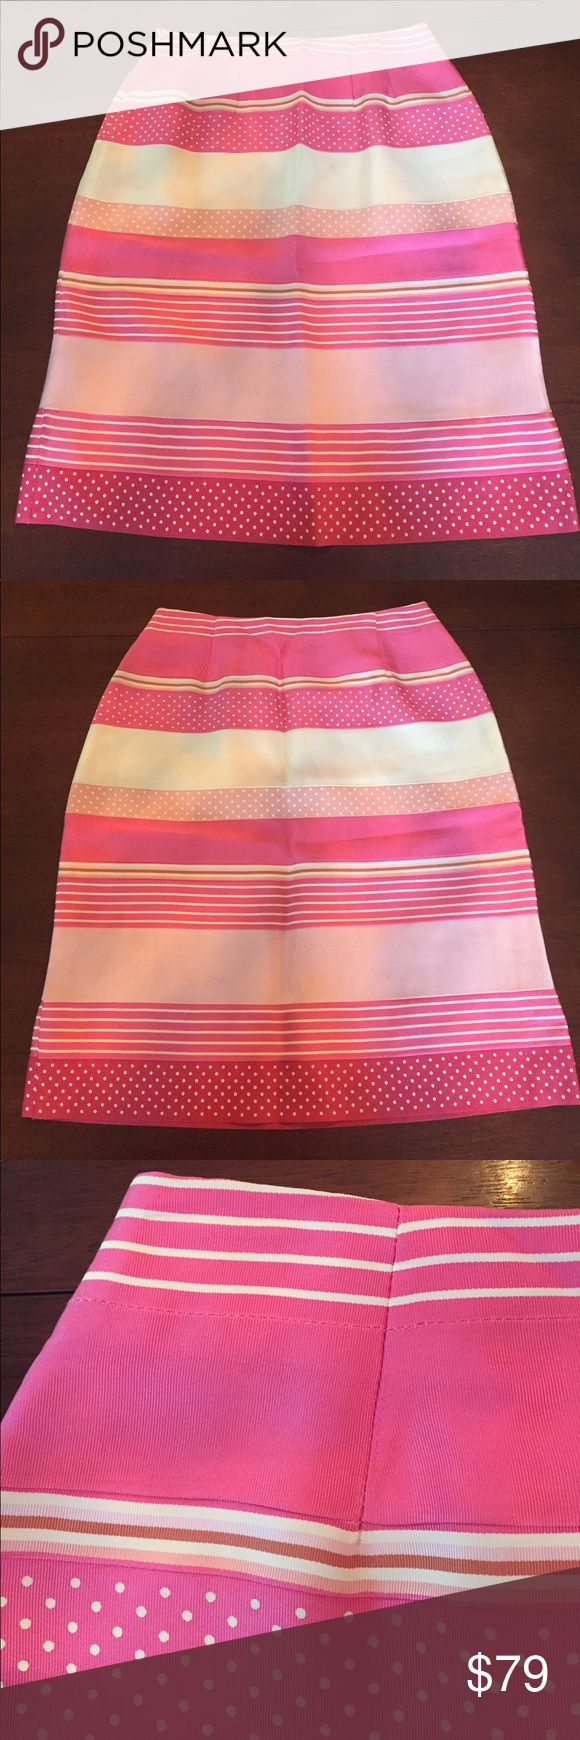 J. McLaughlin Grosgrain Ribbon Skirt This lovely a-line skirt made in the US by J. McLaughlin  is made from multiple rayon grosgrain ribbons. Fully lined. Worn once. J. McLaughlin Skirts Midi